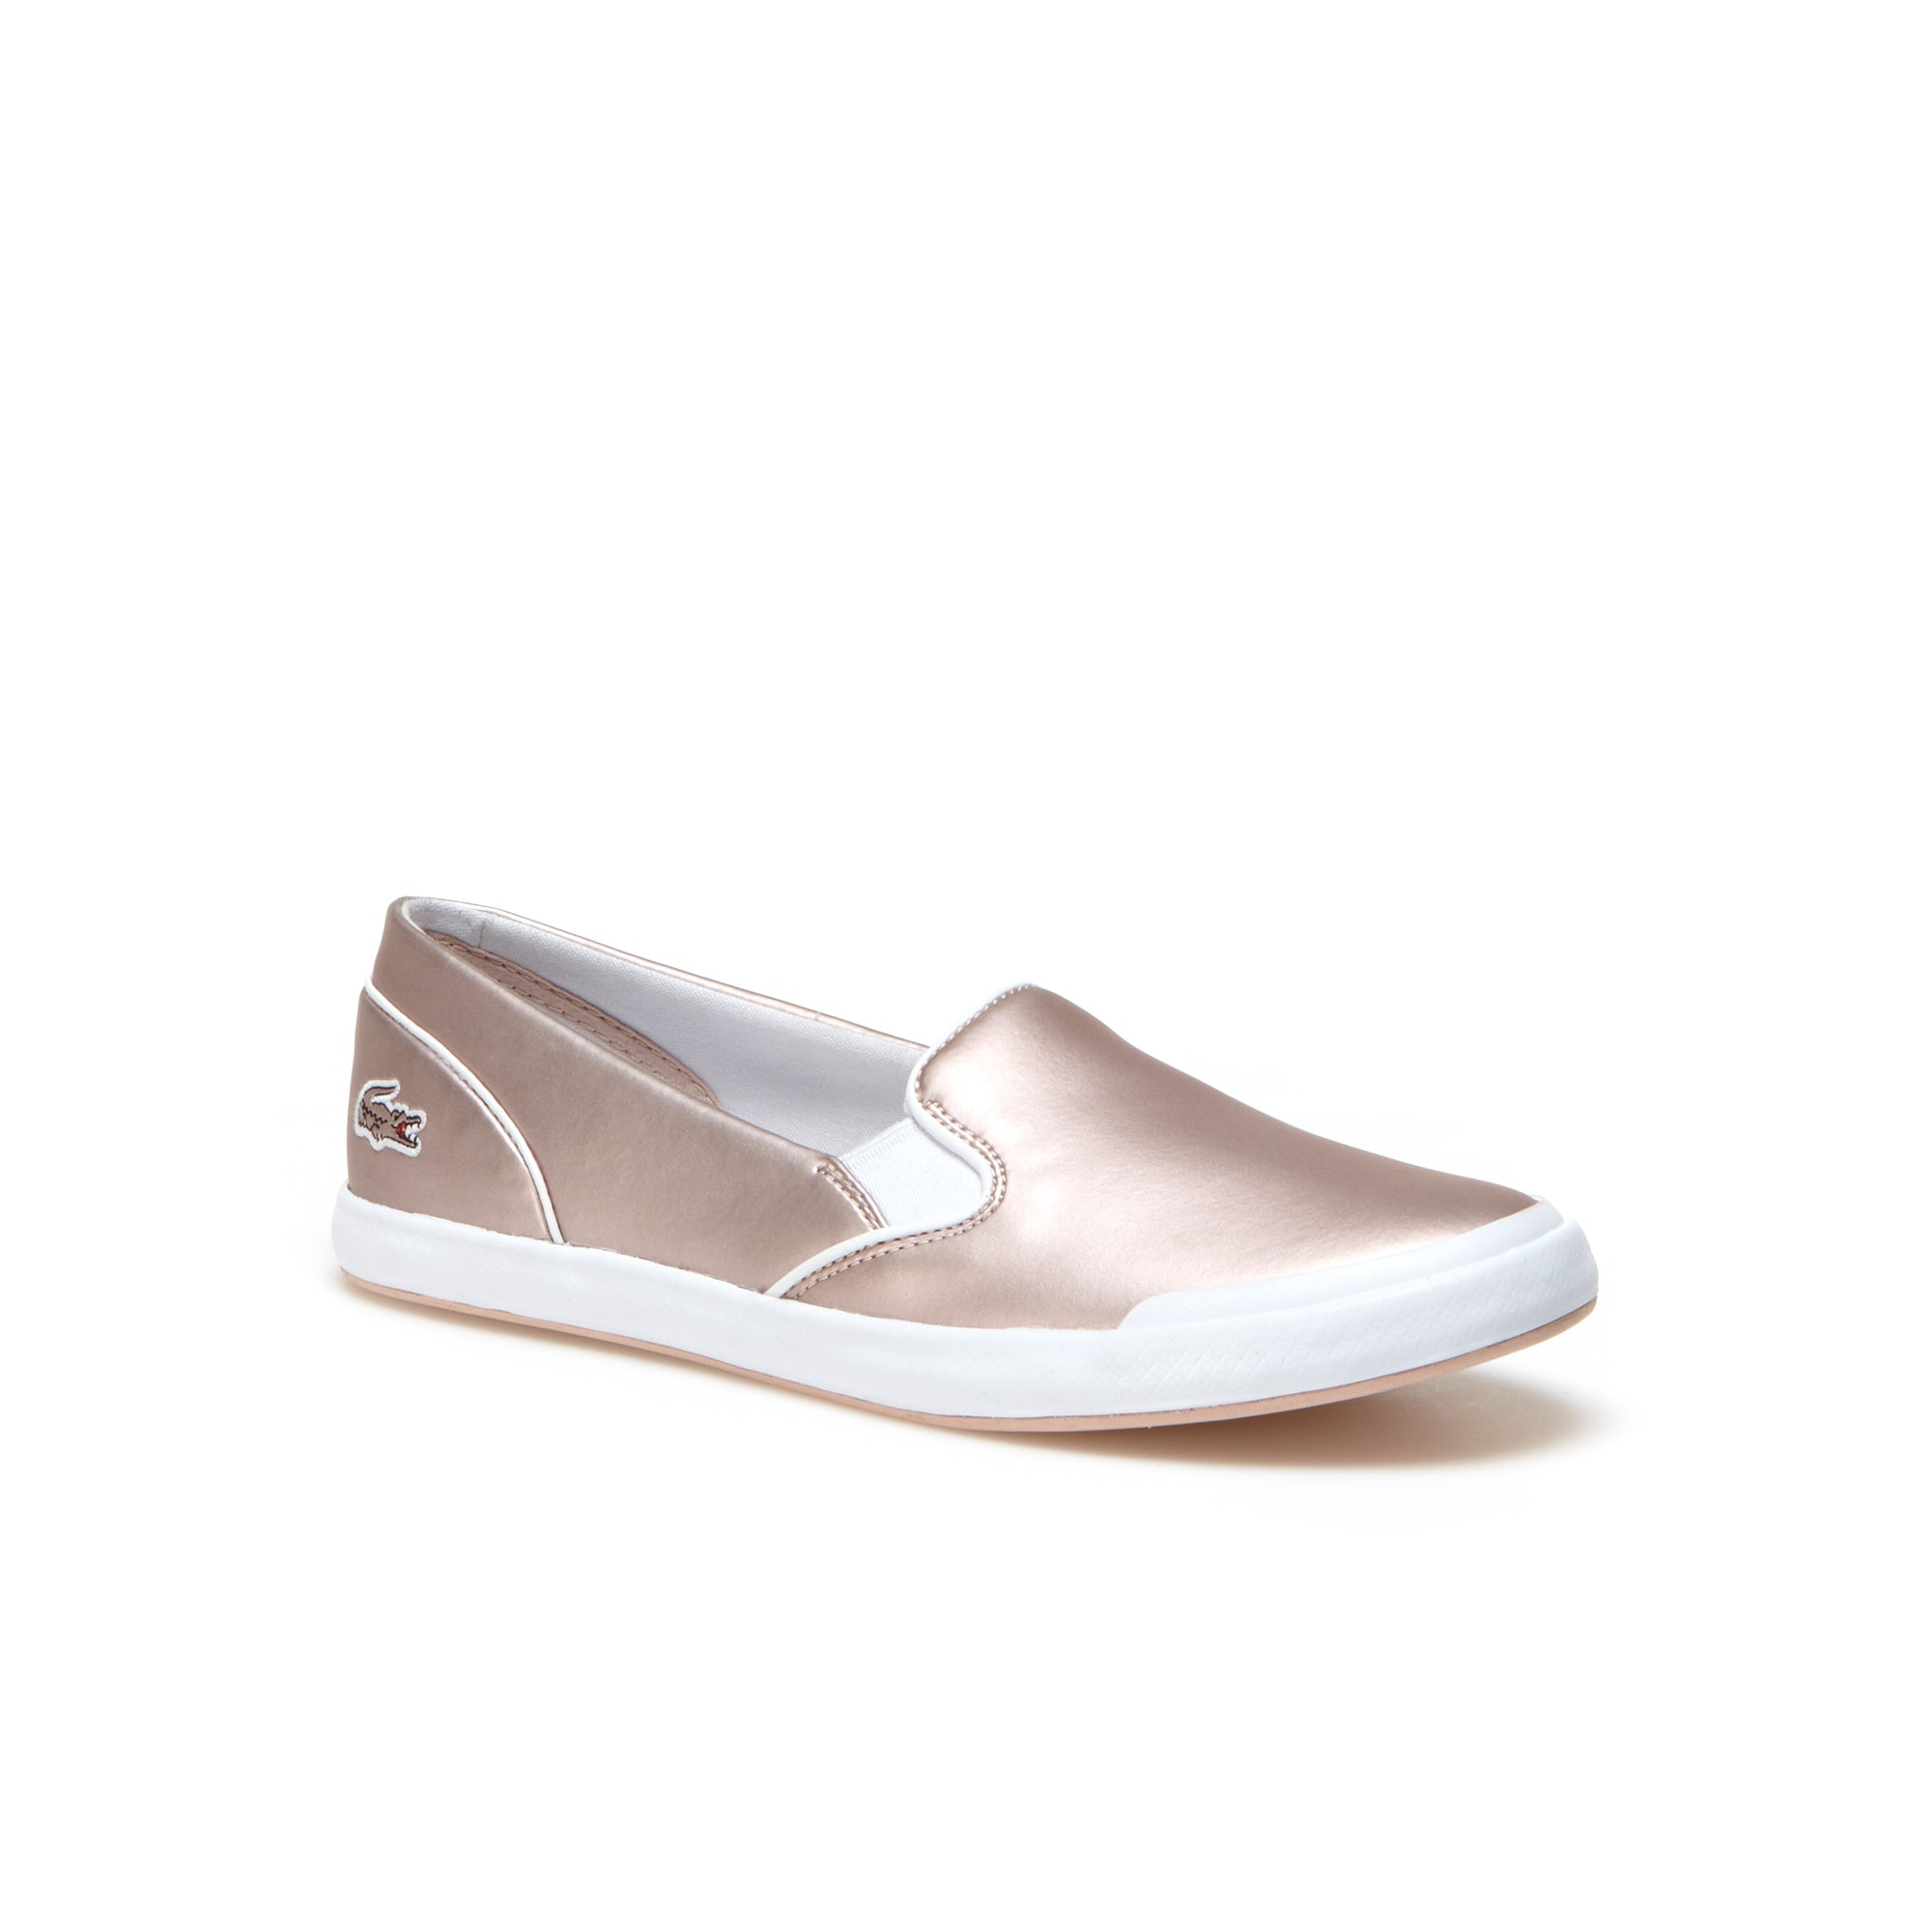 Women's Lancelle Slip-on Leather Trainers